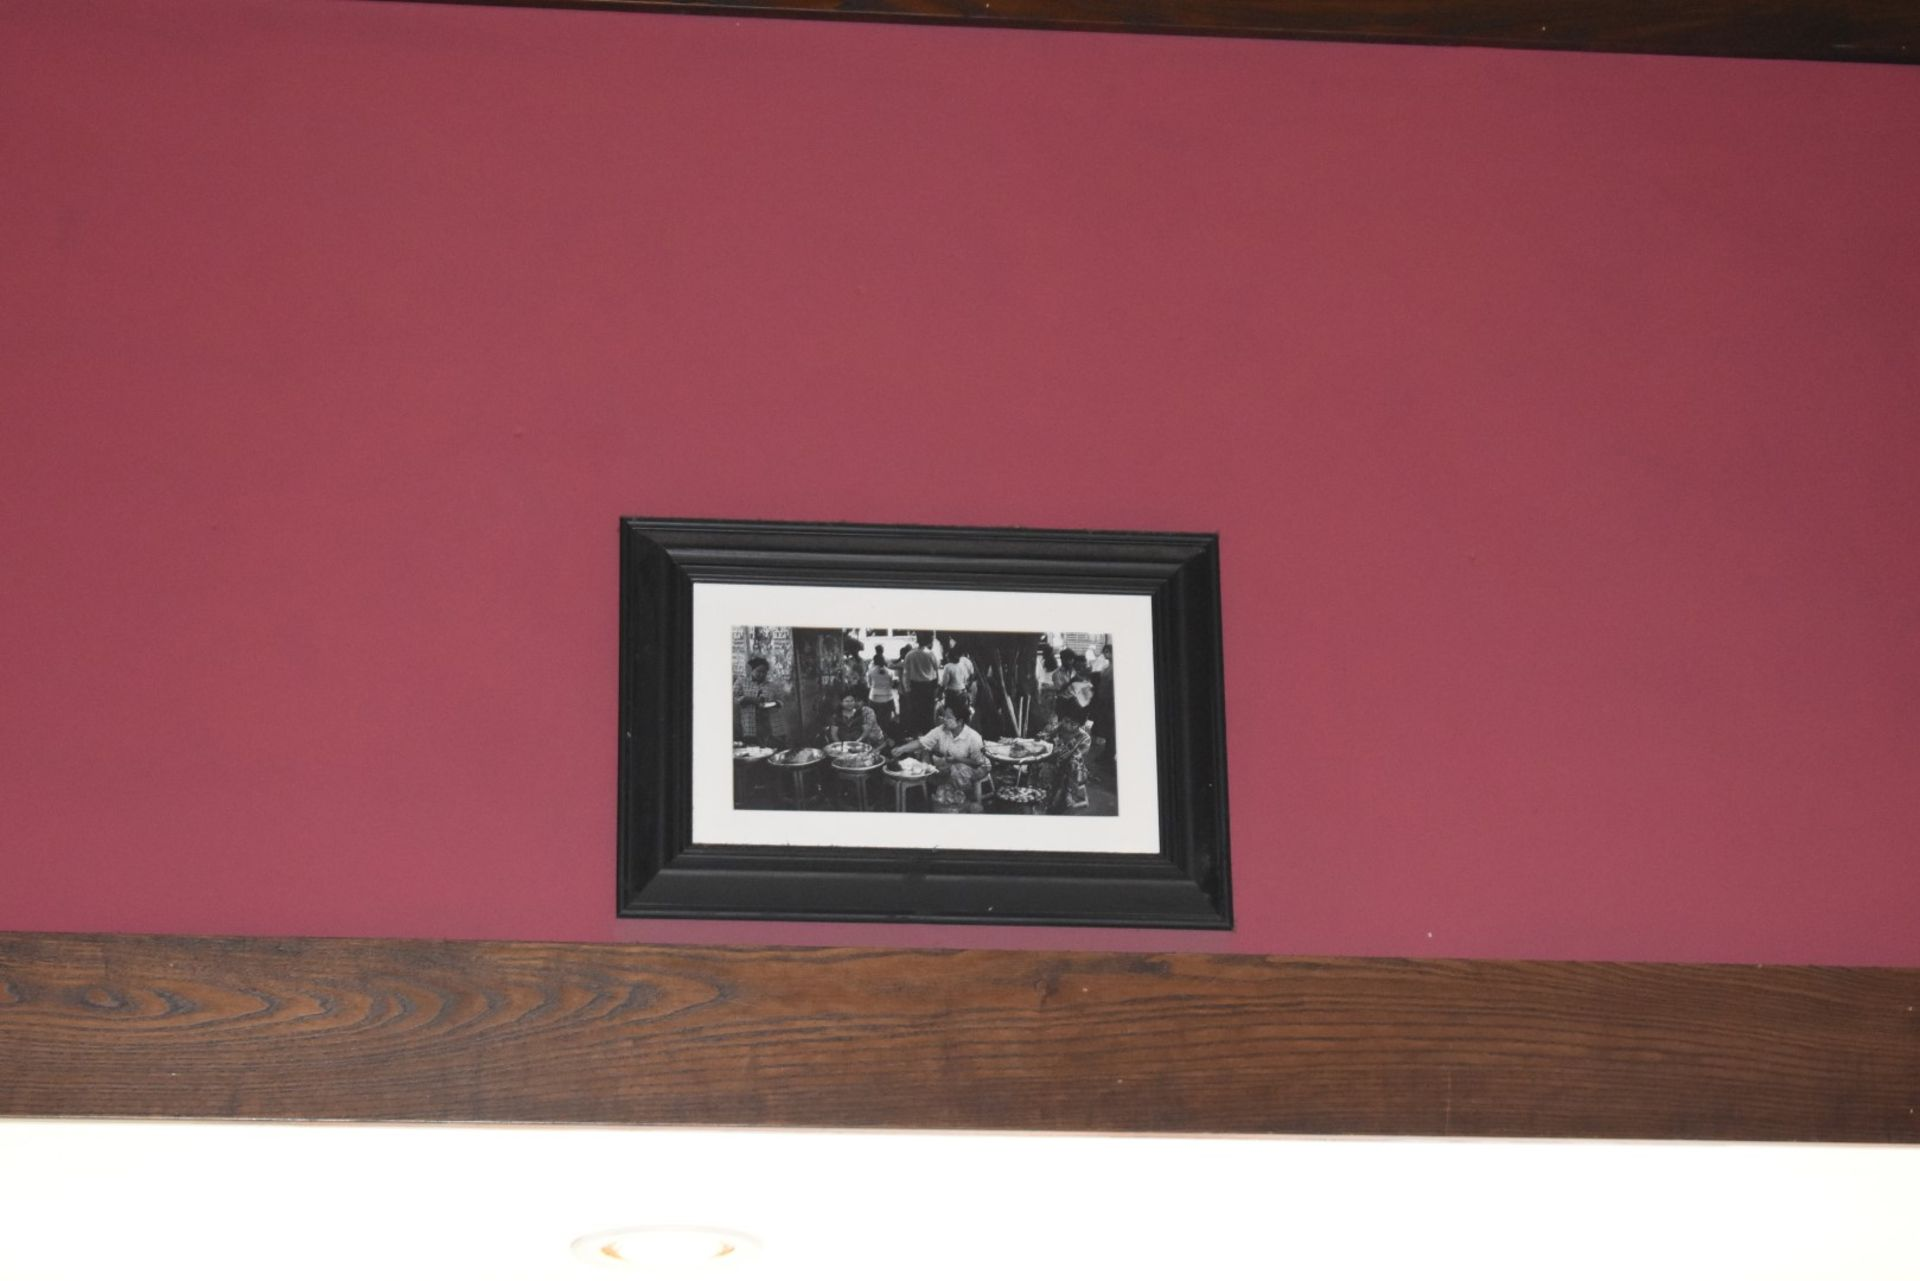 Lot 1340 - 30 x Assorted Pictures in Black Frames - Pictures Will Be Picked at Random From The Selection